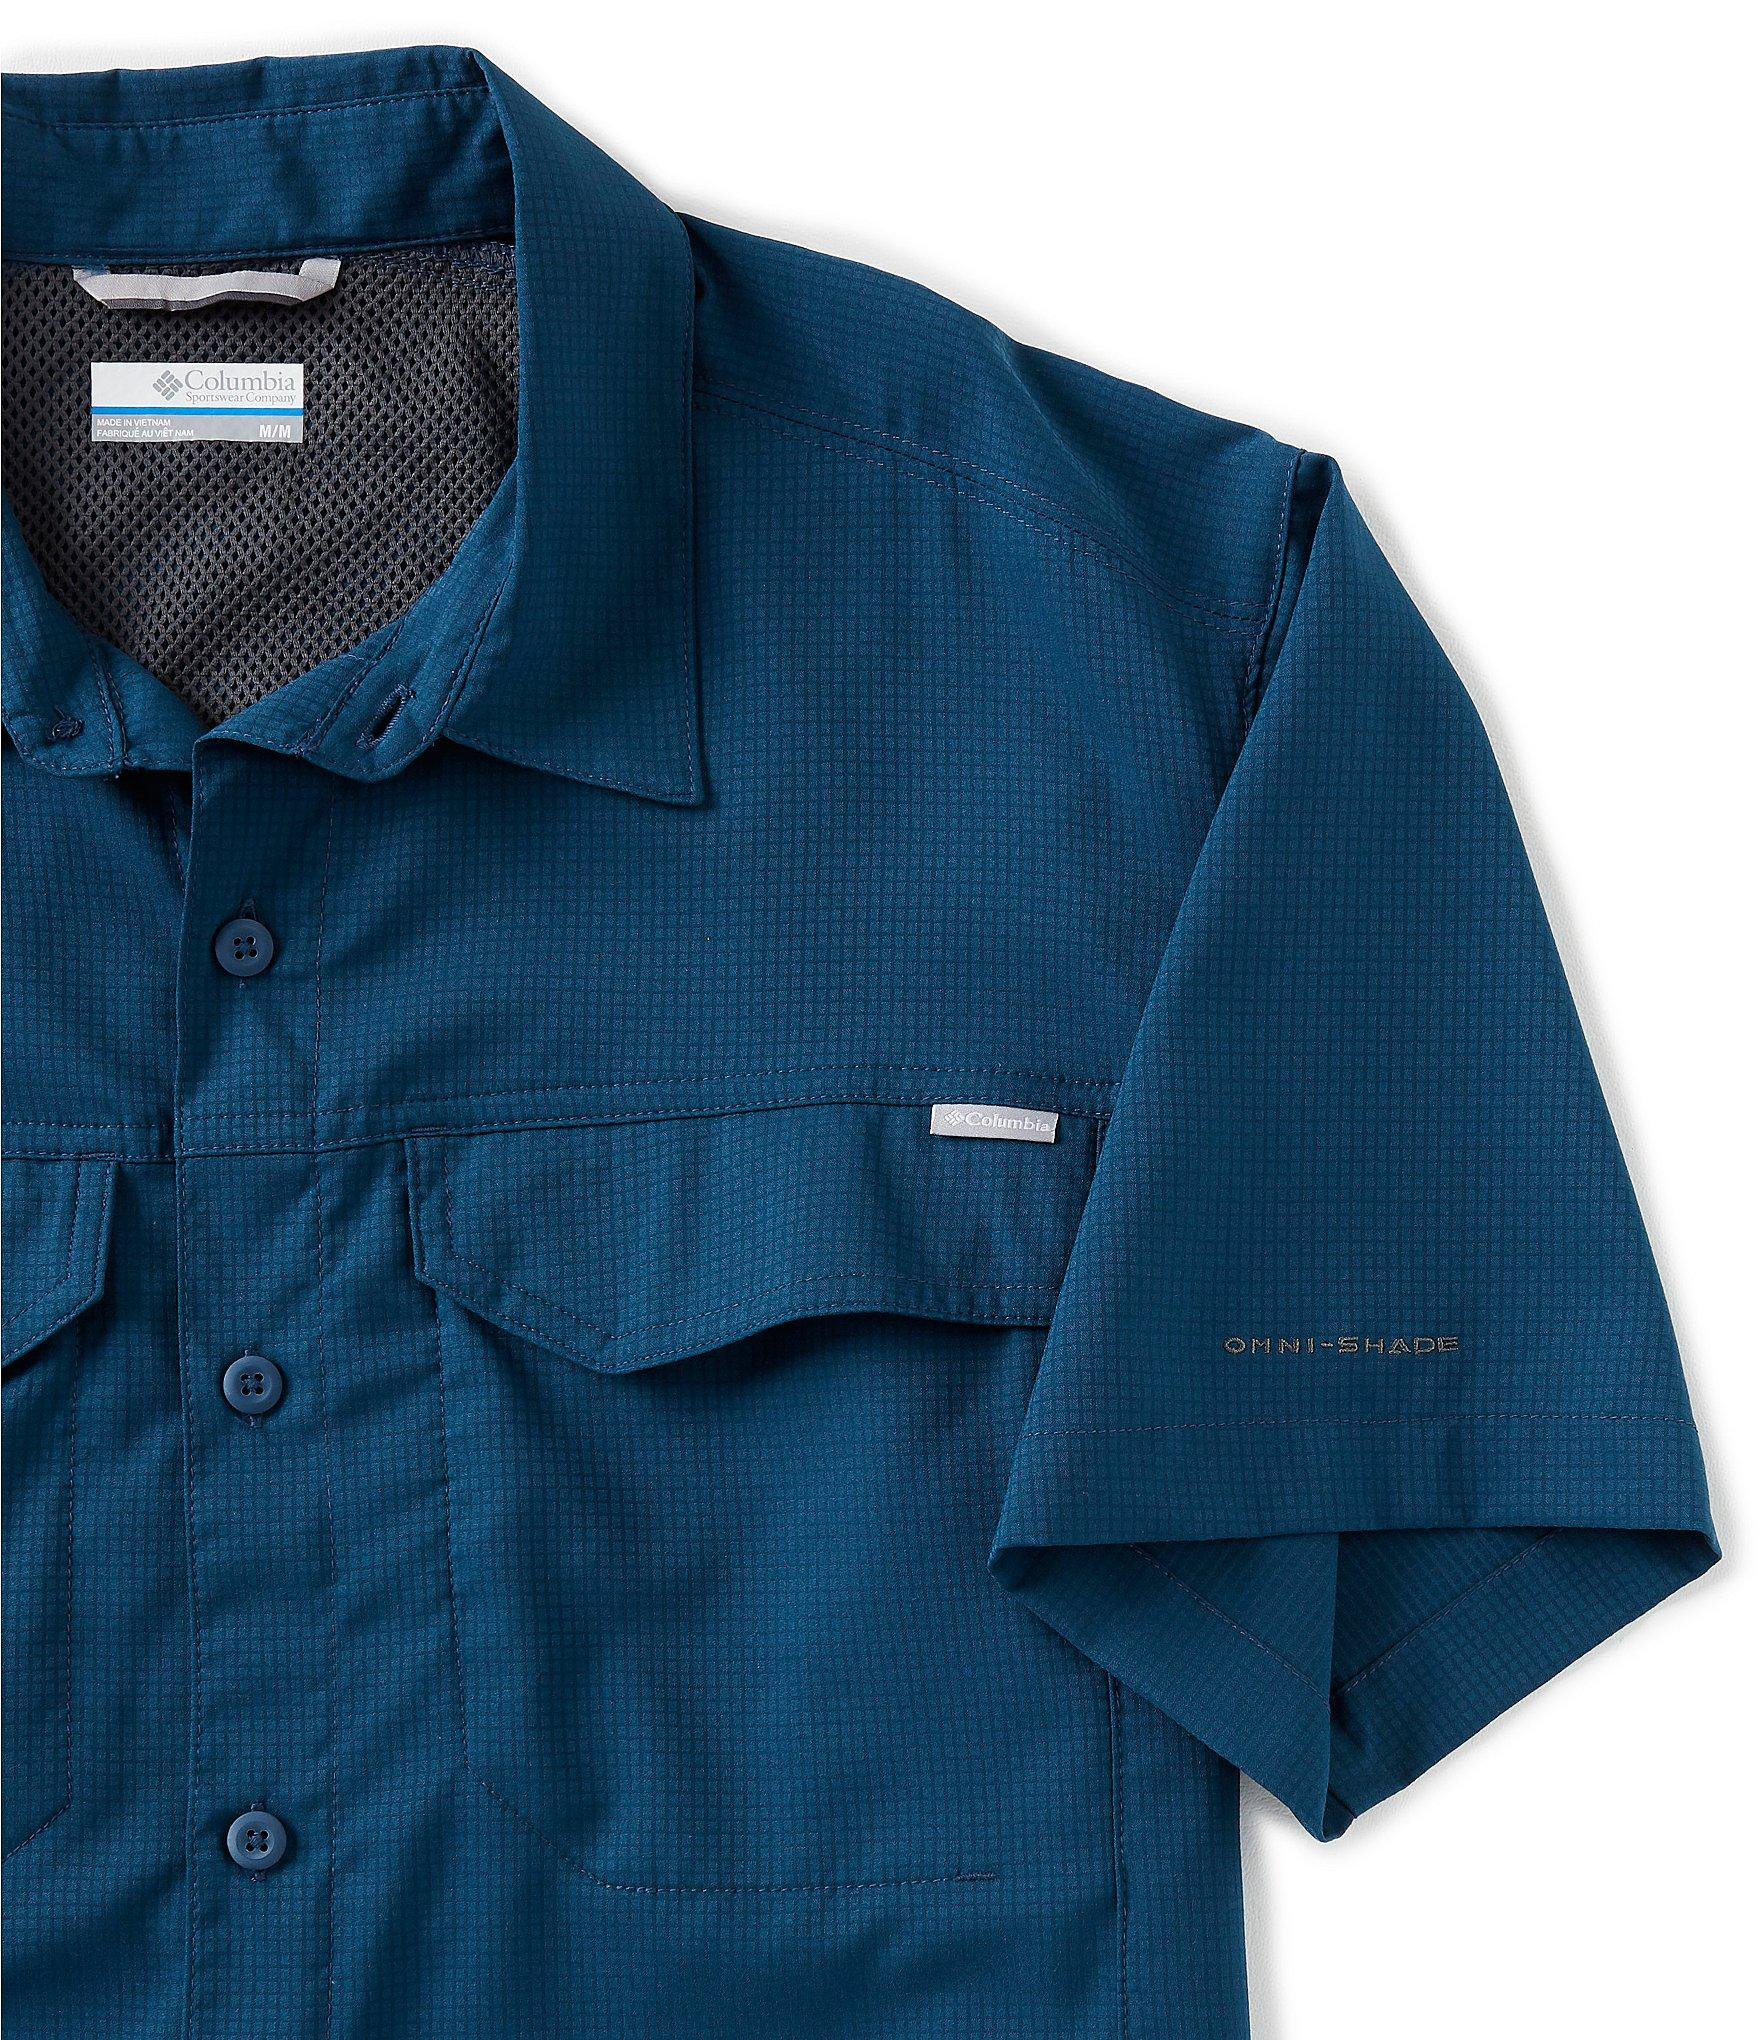 39e181cd0f3 Columbia - Blue Pfg Silver Ridge Lite Short-sleeve Woven Shirt for Men -  Lyst. View fullscreen